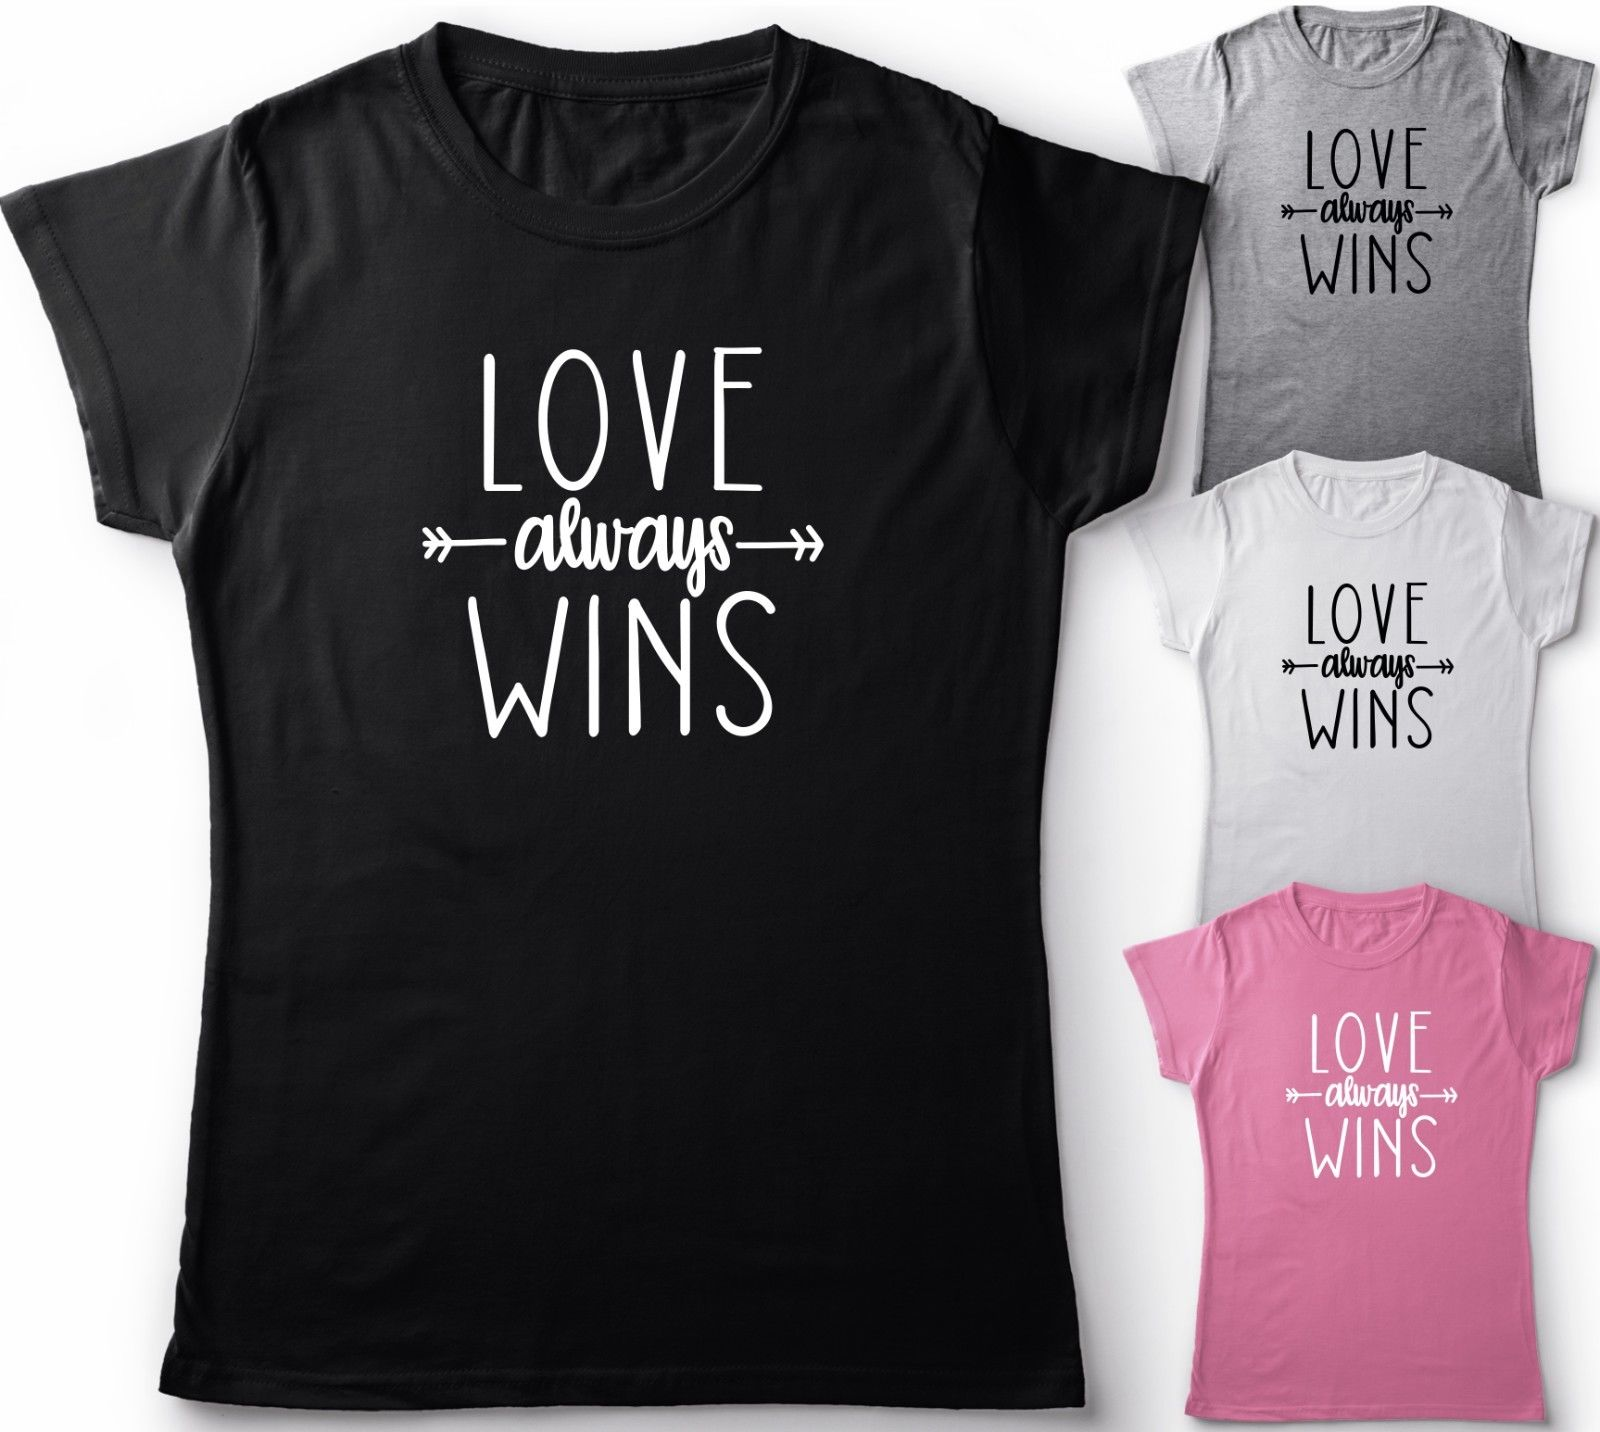 cd778d5dc LOVE ALWAYS WINS UNISEX /LADIES T SHIRT LOVE SLOGAN TOP PARTY GIFT IDEA TEE  Summer Casual Man Good Quality free shipping